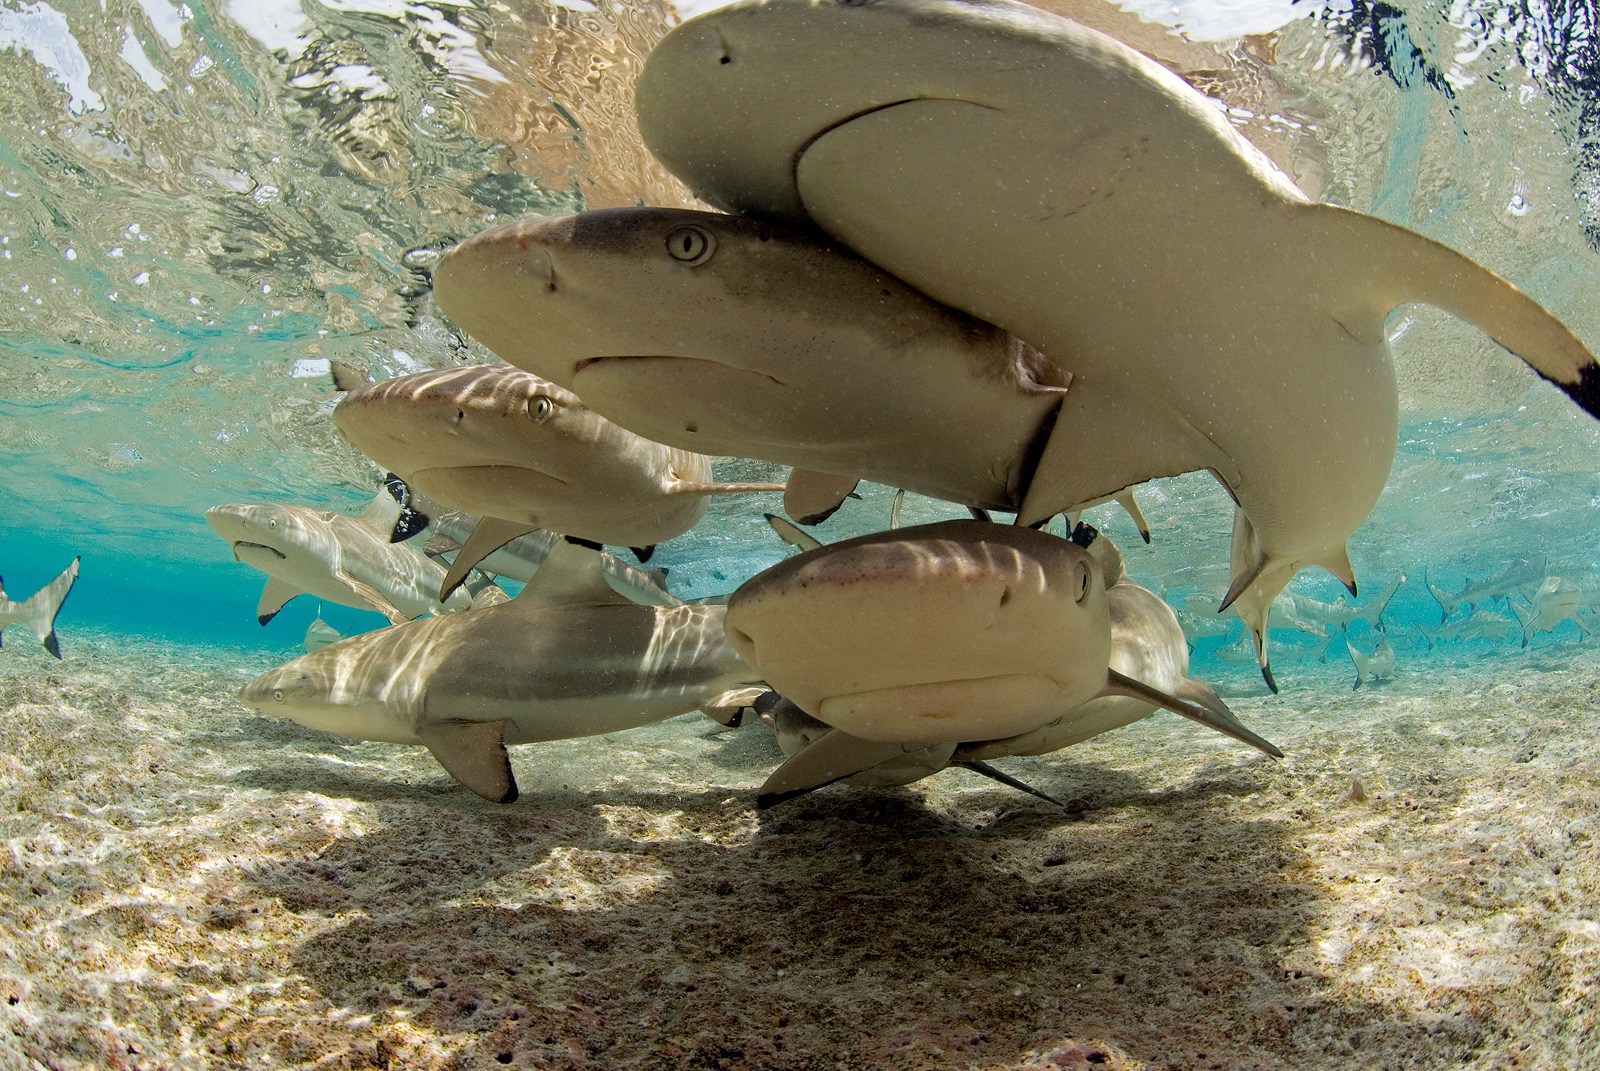 An underwater photo of sharks<div class='credit'><strong>Credit:</strong> An underwater photo of sharks</div>